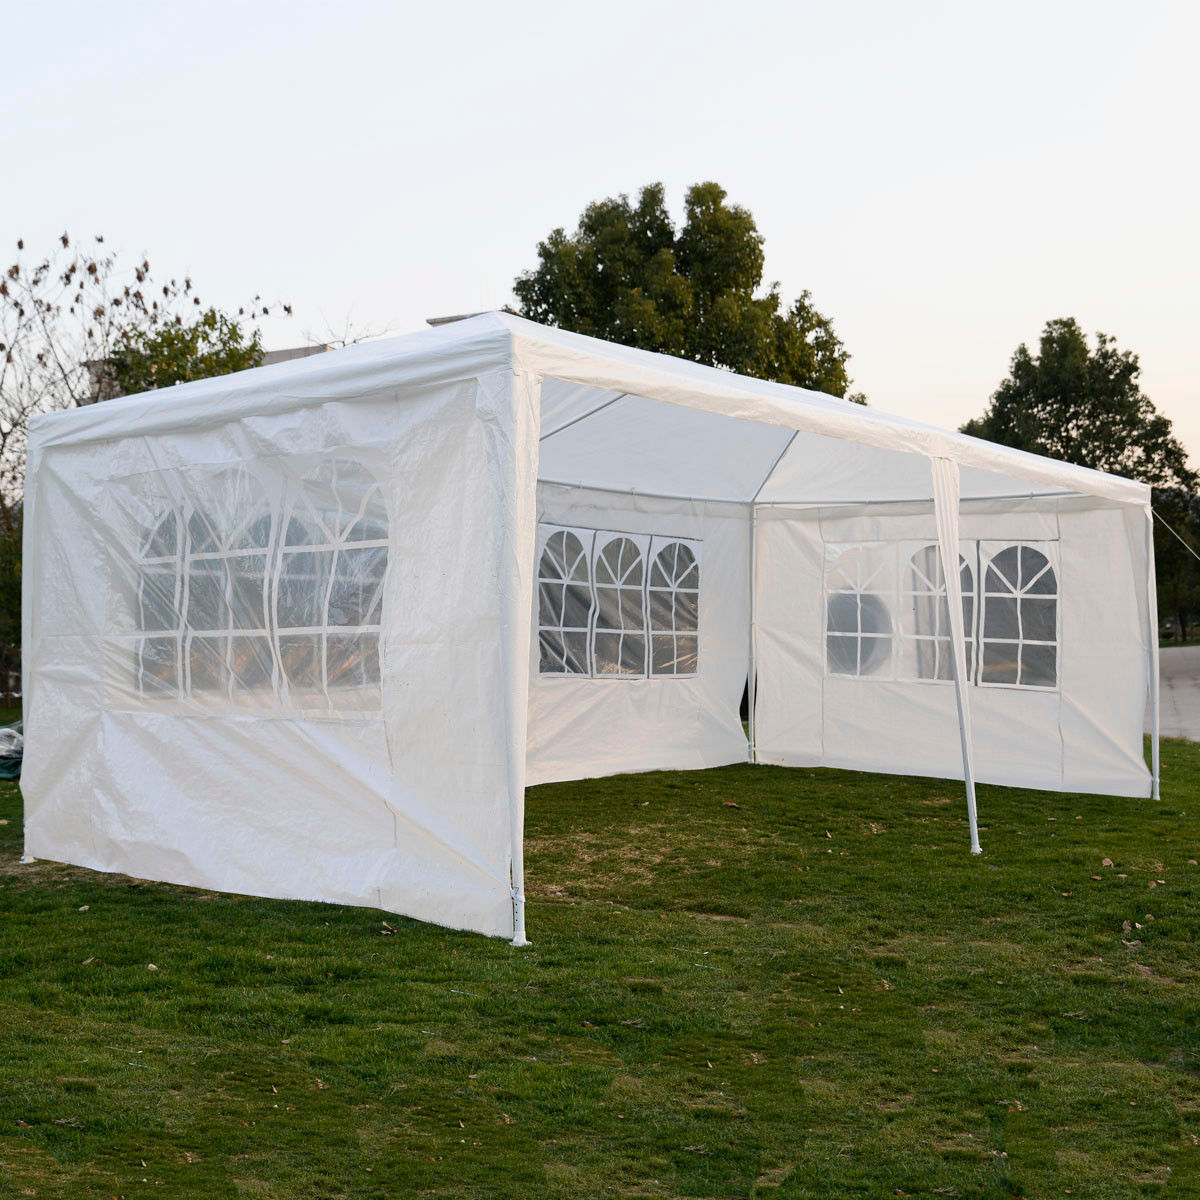 10 x 20 white party tent w 4 sidewalls. Black Bedroom Furniture Sets. Home Design Ideas